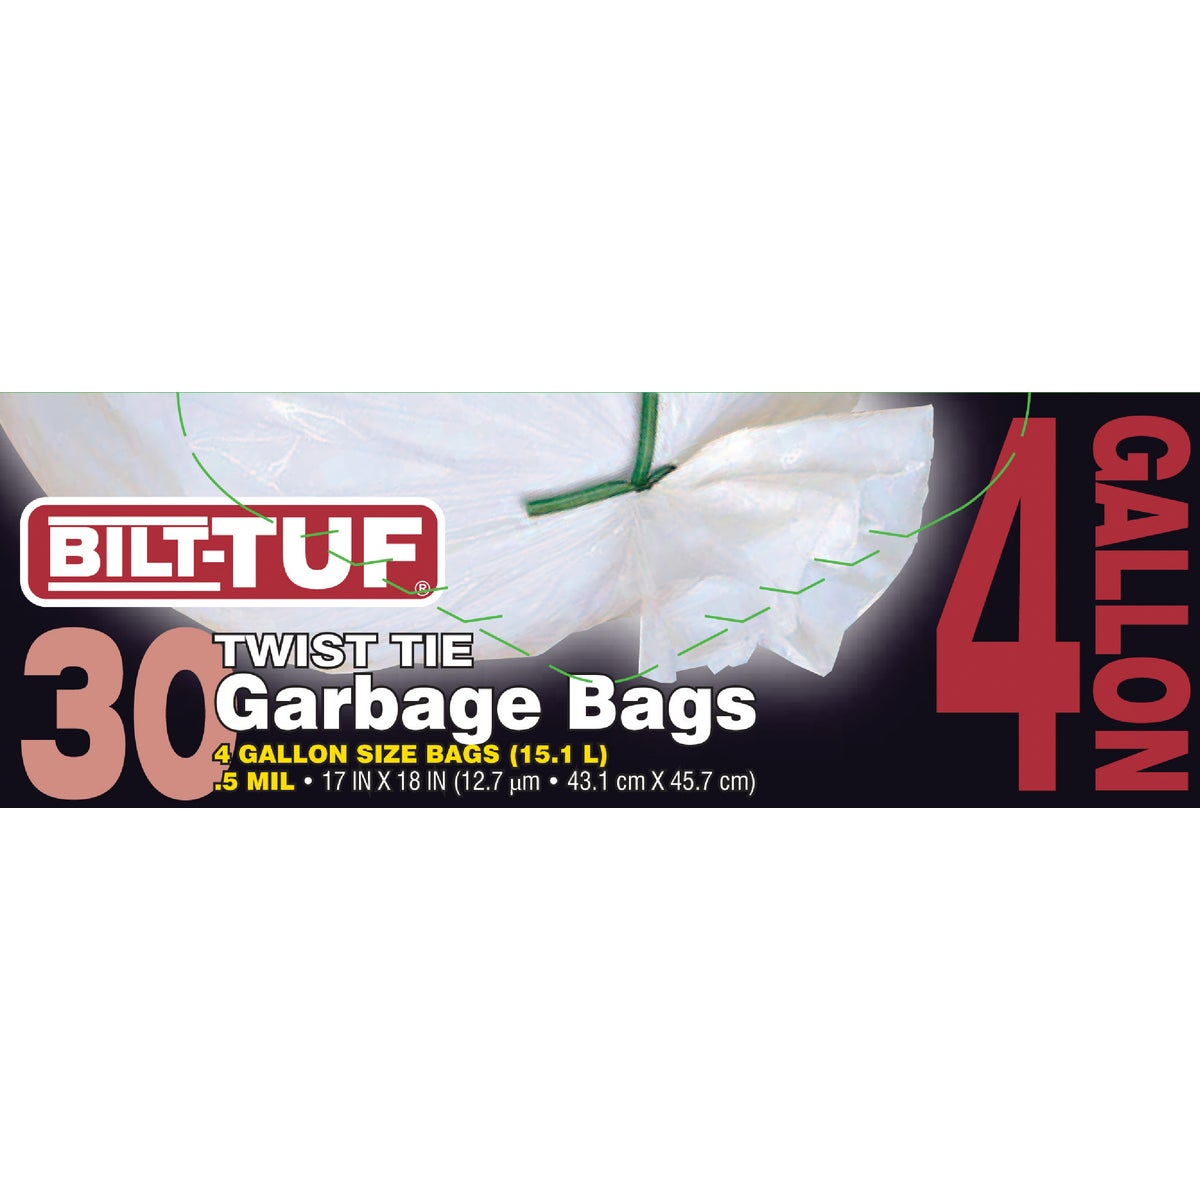 Presto Products Bilt-Tuf 4 Gallon Trash Bag at Sears.com